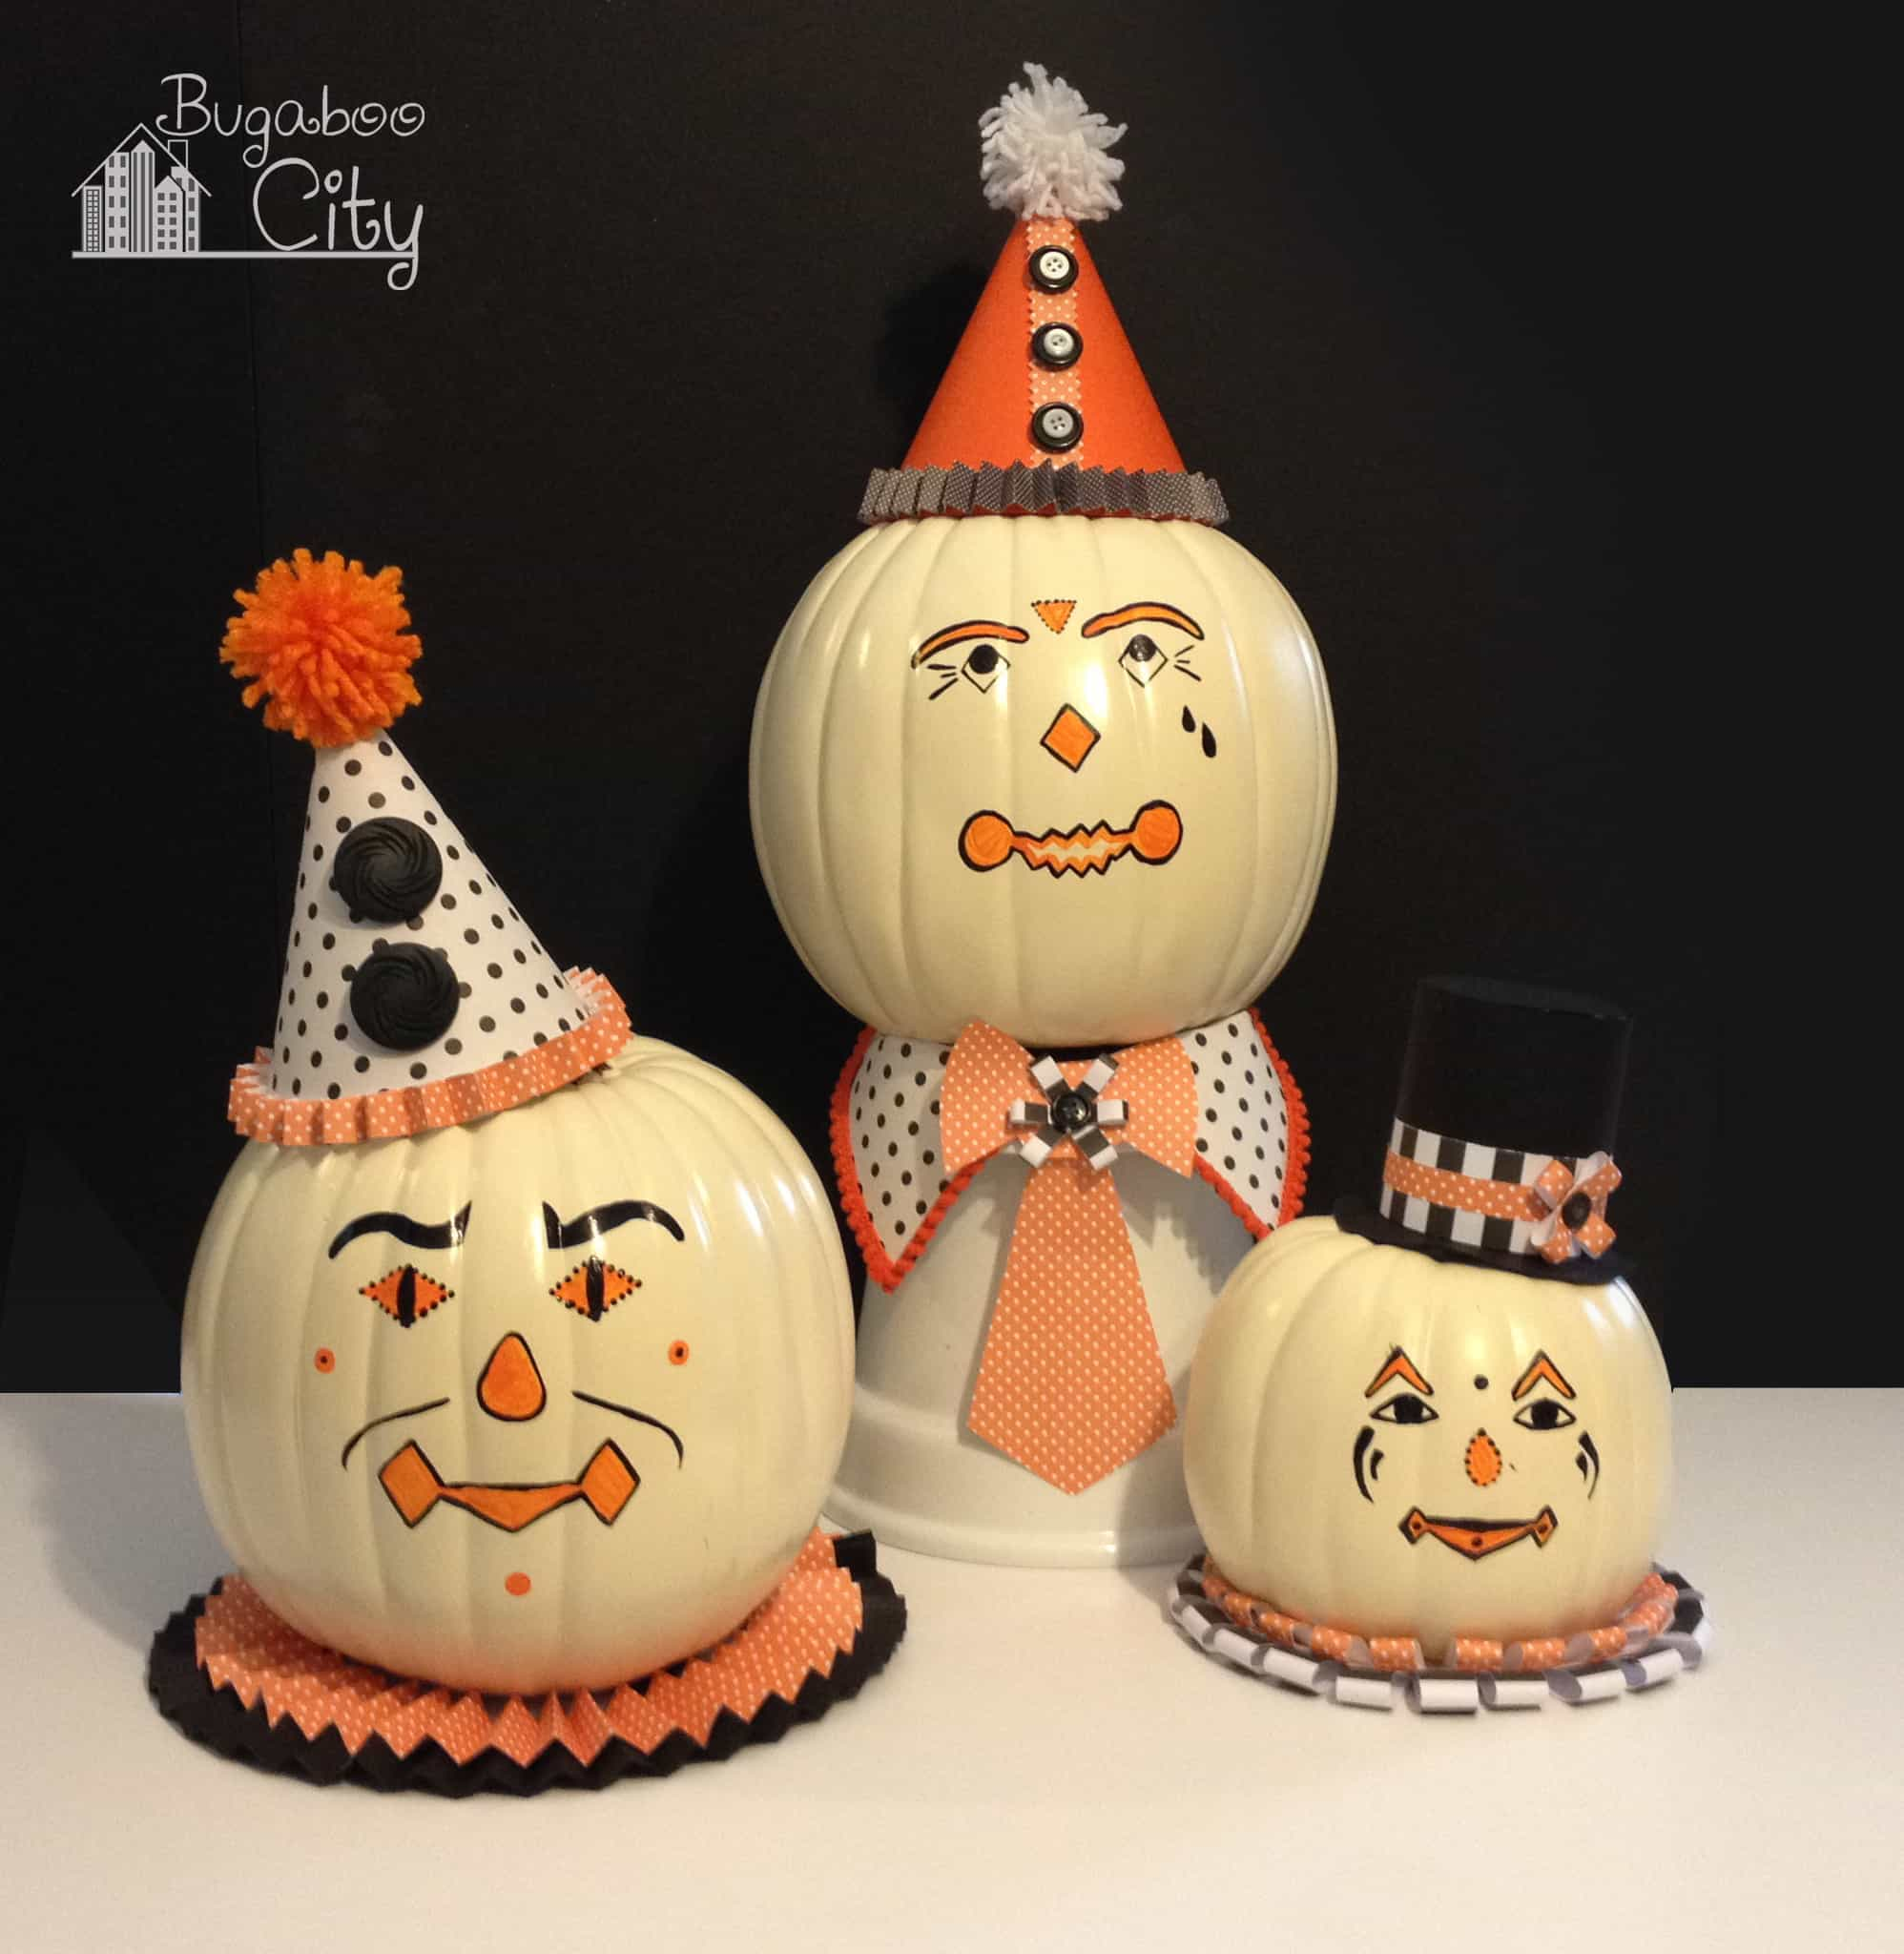 Vintage halloween paper decorations - For Some Reason Vintage Clowns Creep Me Out Way Less Than Modern Clowns Who Knows Why